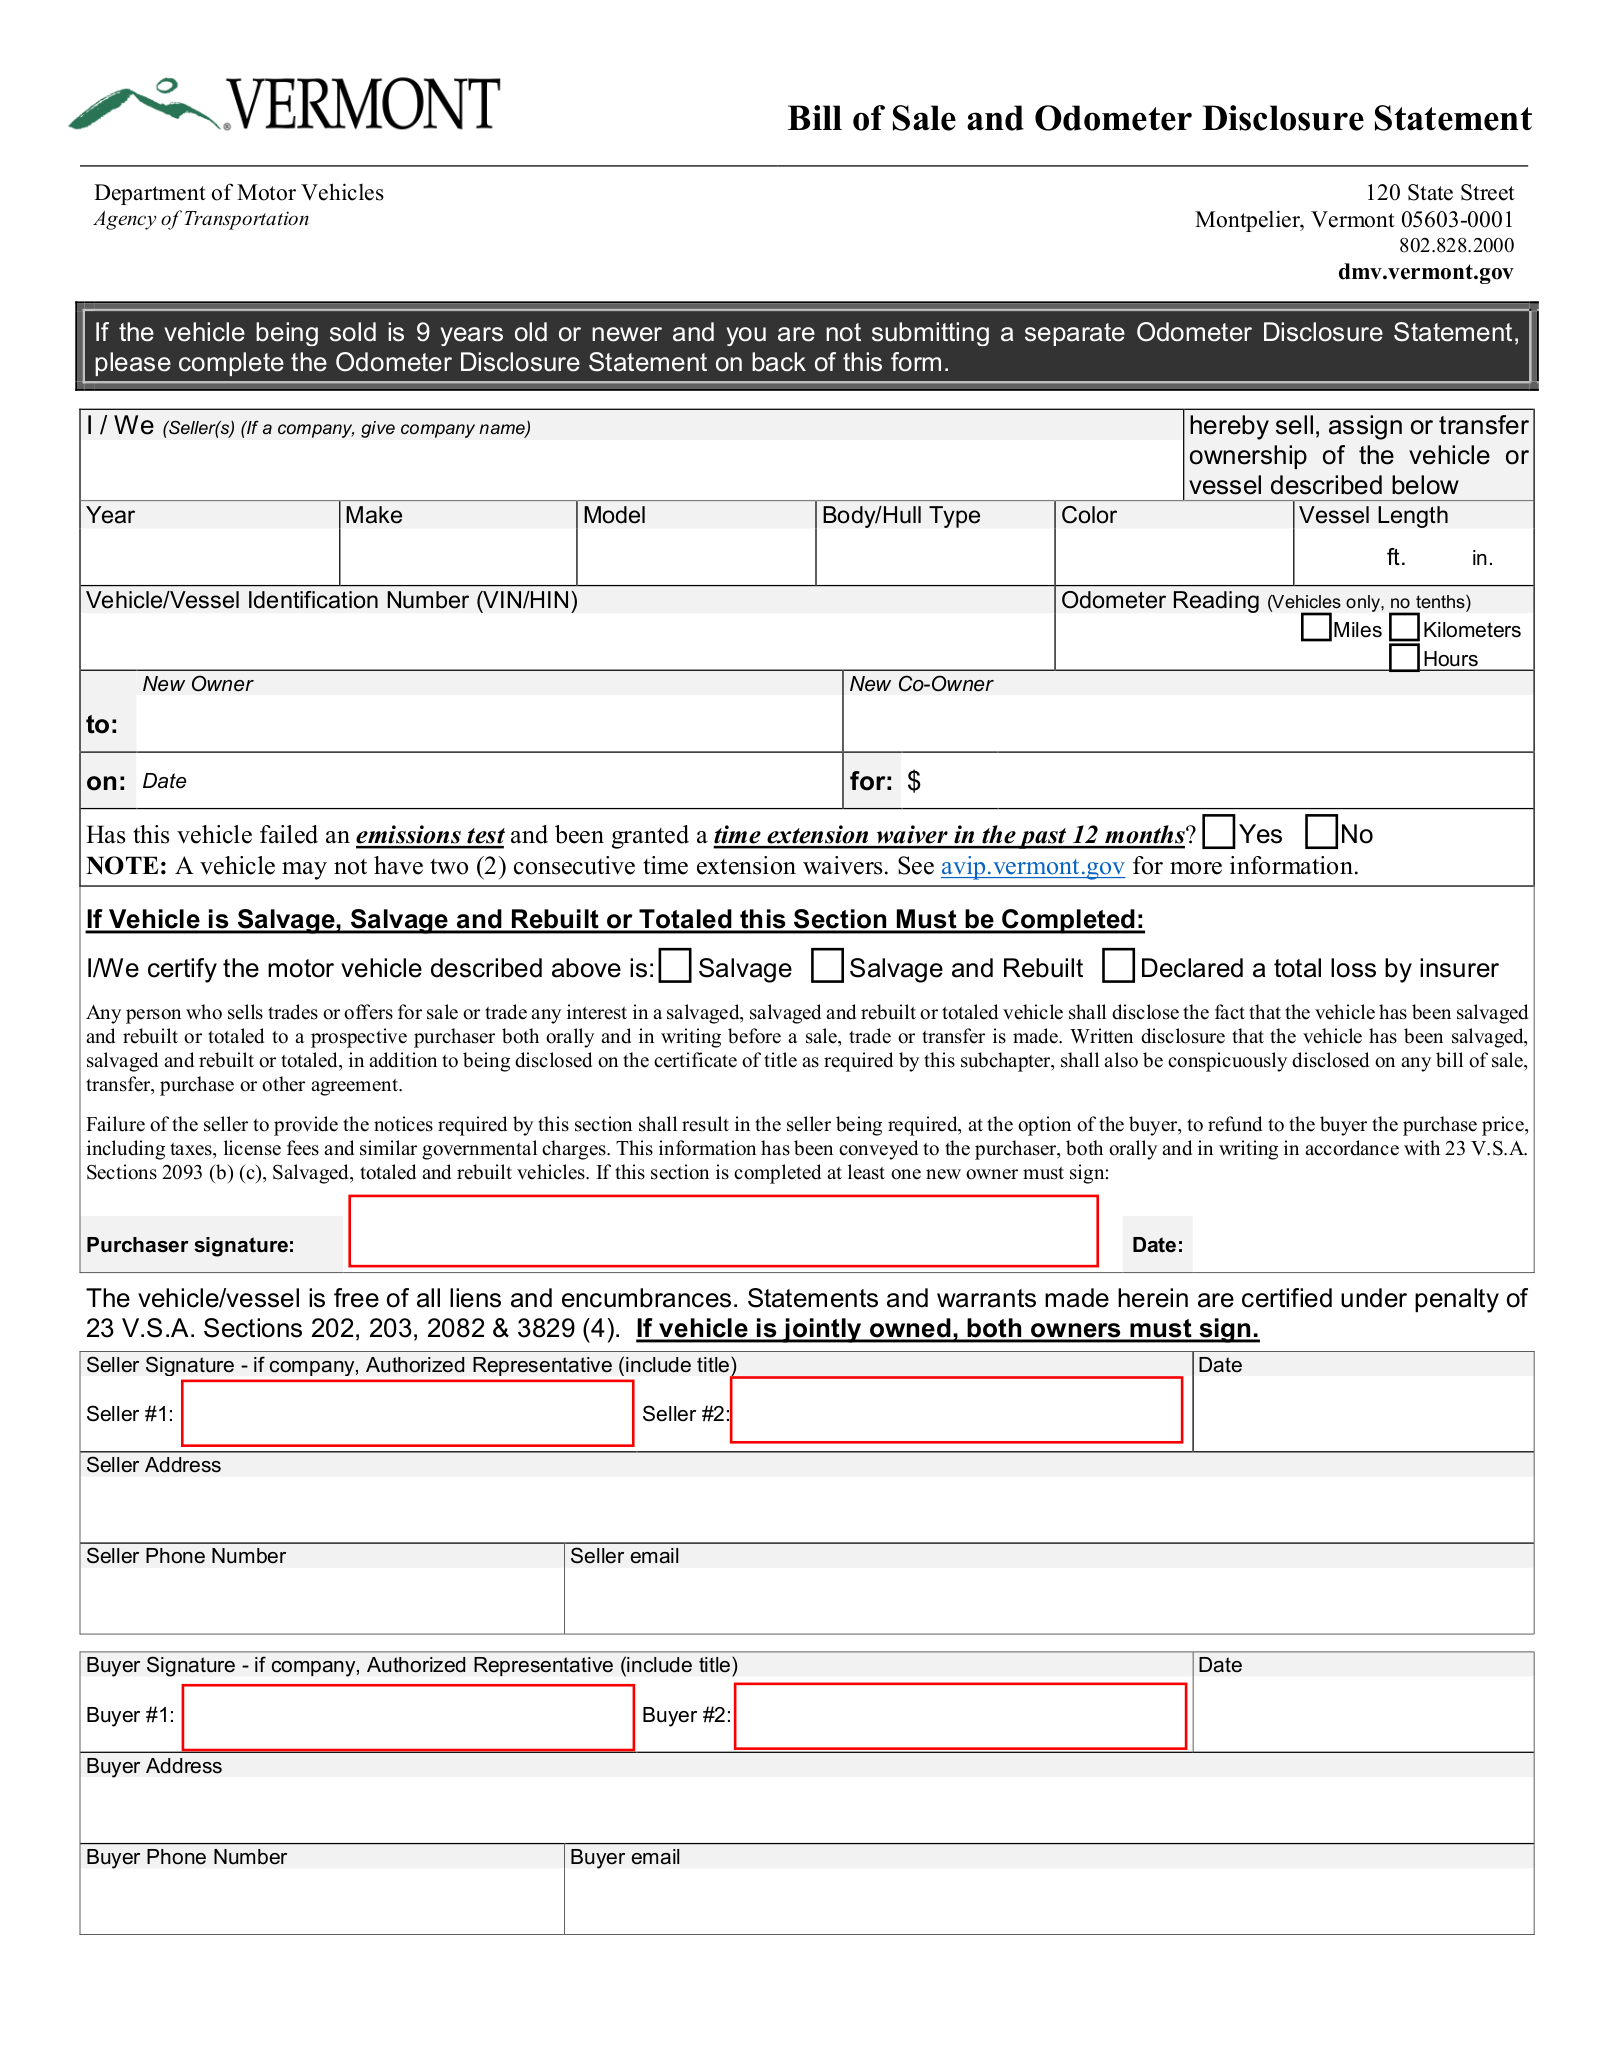 Vermont Motor Vehicle Bill Of Sale Form Vt 005 Eforms Free